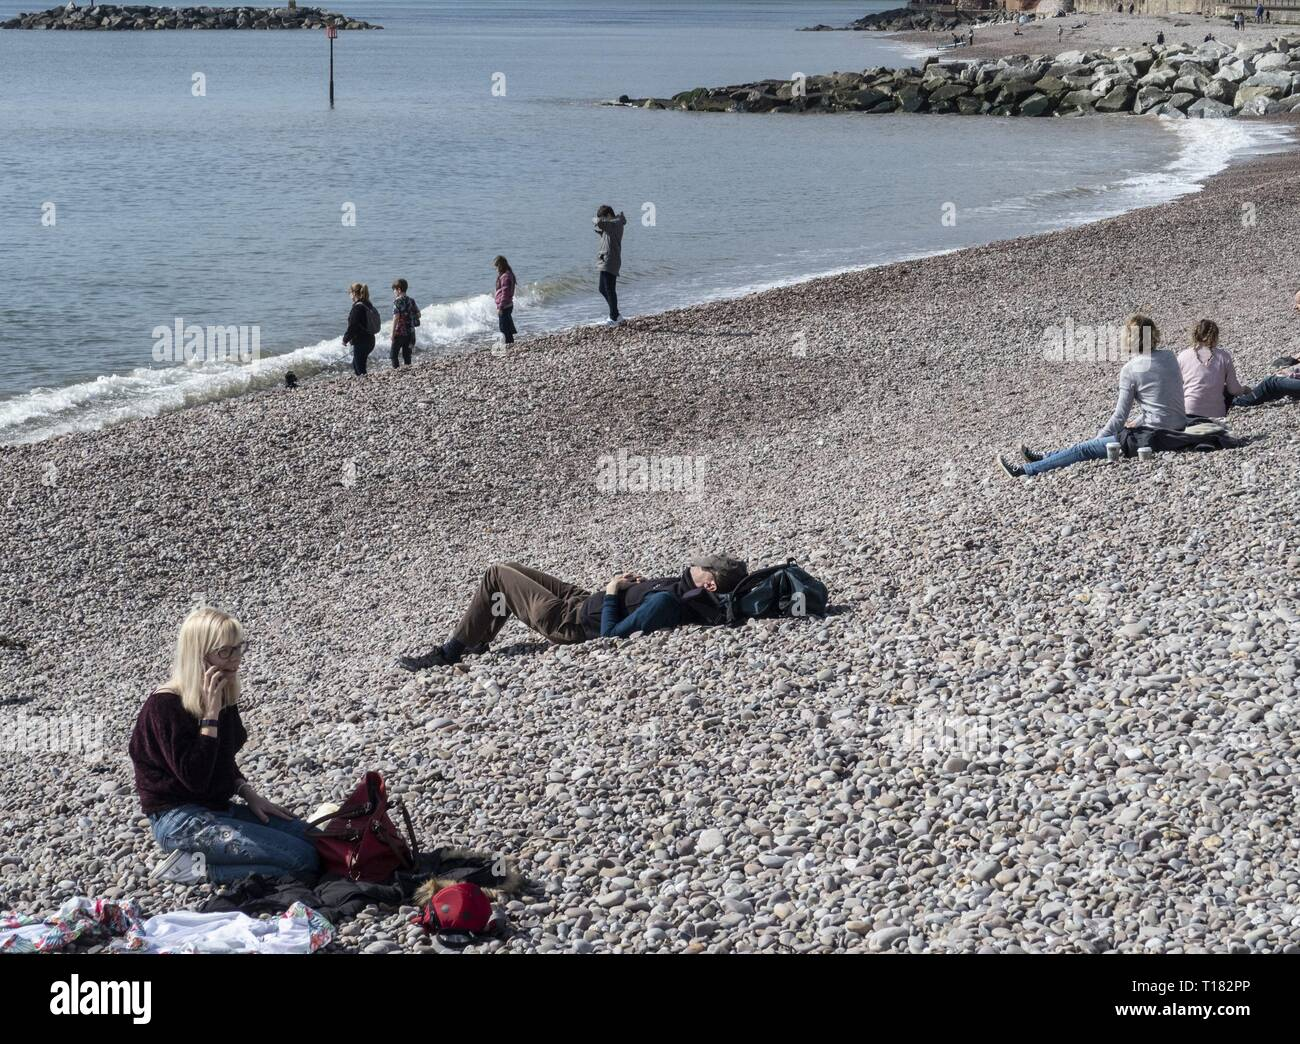 Sidmouth, UK. 24th Mar, 2019. A spot of warm sunshine tempted people onto the beaches at Sidmouth. Credit: Photo Central/Alamy Live News Stock Photo